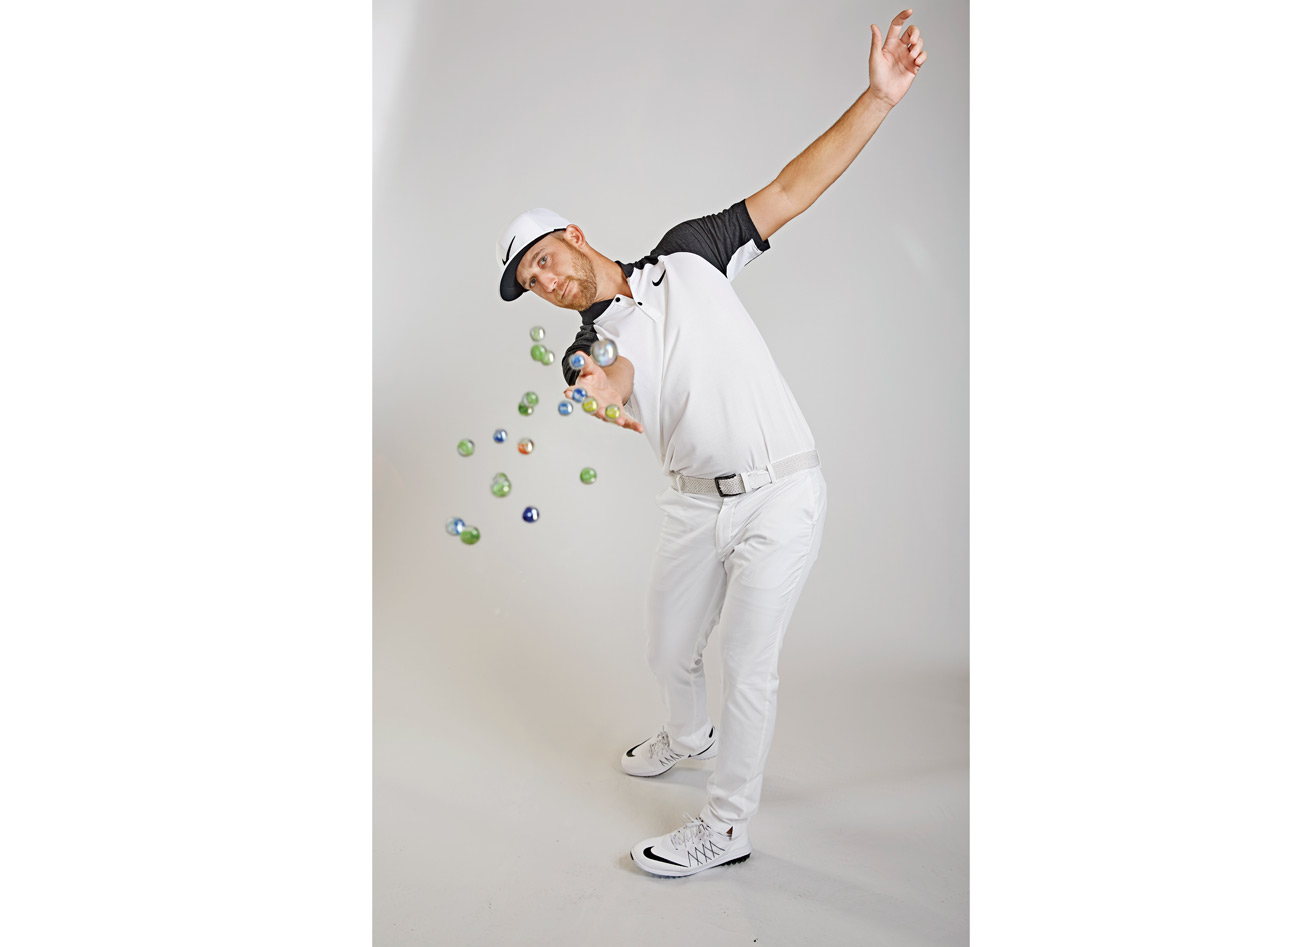 As you swing though the ball, imagine where a handful of marbles would land if you let them go right at impact. The goal is to toss them straight down the target line. If the marbles shoot out to the left or right, do what I do and keep tossing—eventually your swing will find the right plane. It also improves your attack angle. With driver, the marbles should shoot out horizontally. With irons, you want the marbles to hit the turf a few feet in front of the ball.